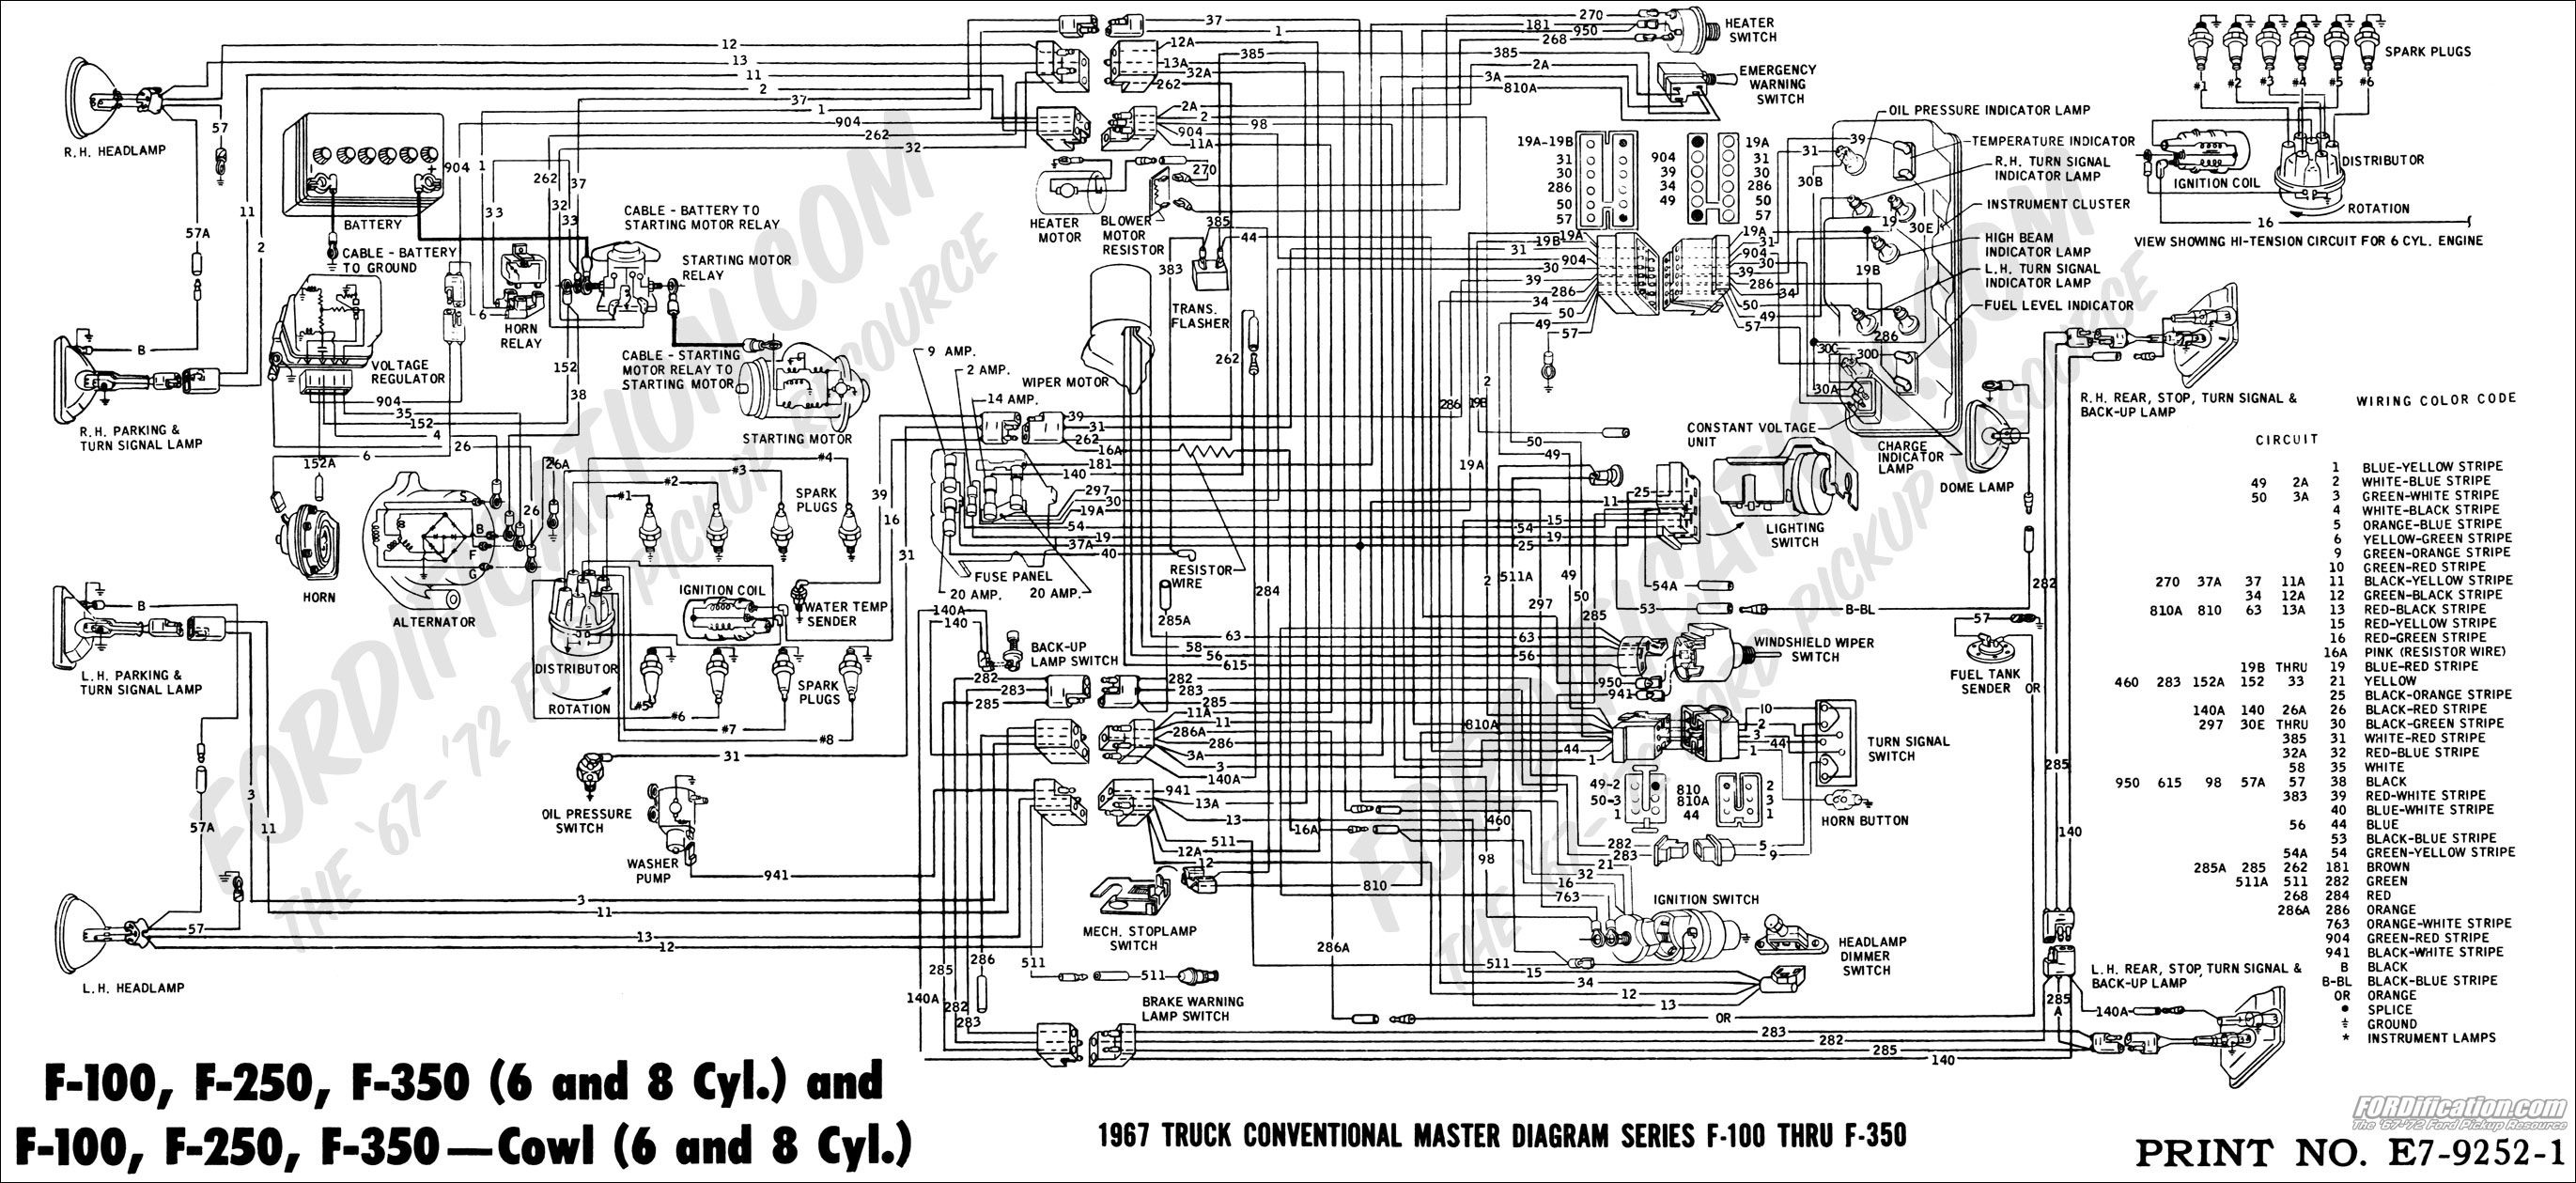 wiring diagram for 1978 ford bronco the wiring diagram 1979 4x4 wiring diagram 1979 printable wiring diagrams database wiring diagram